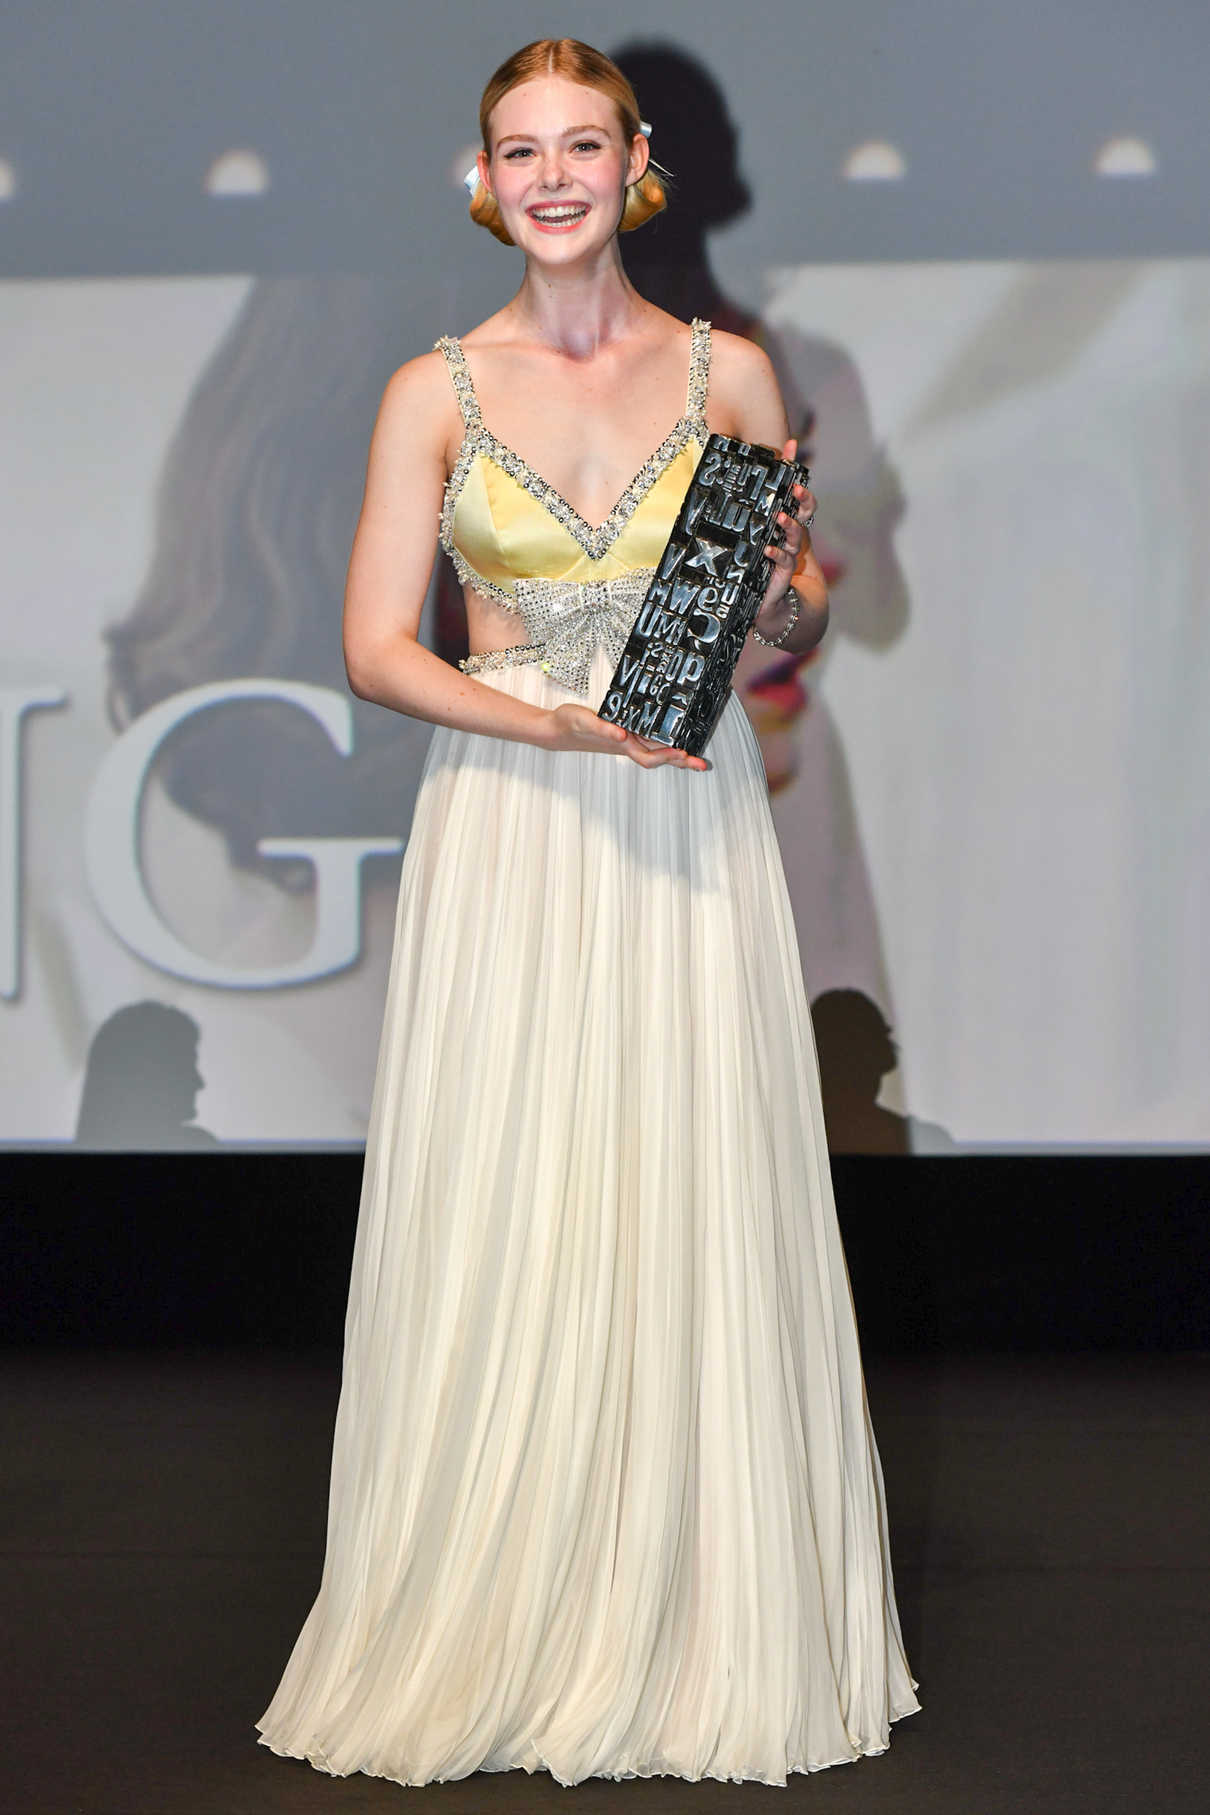 Elle Fanning Receives the Rising Star Award During the 44th Deauville American Film Festival in Deauville 09/01/2018